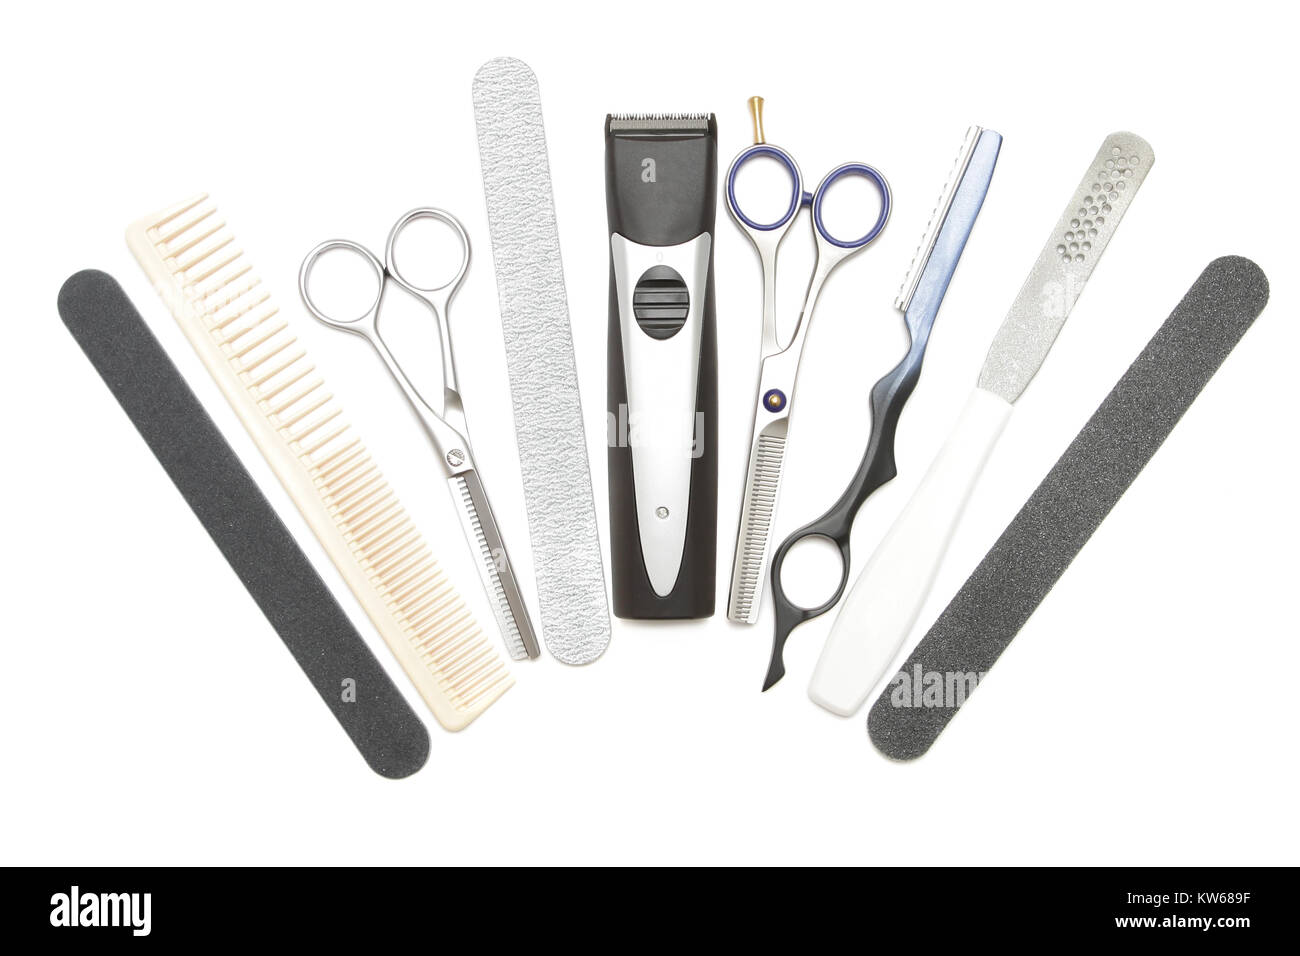 Professional hairdressing, manicure and pedicure tools. Comb, clip, file, scissor, clippers, tweezer and hair trimmer Stock Photo